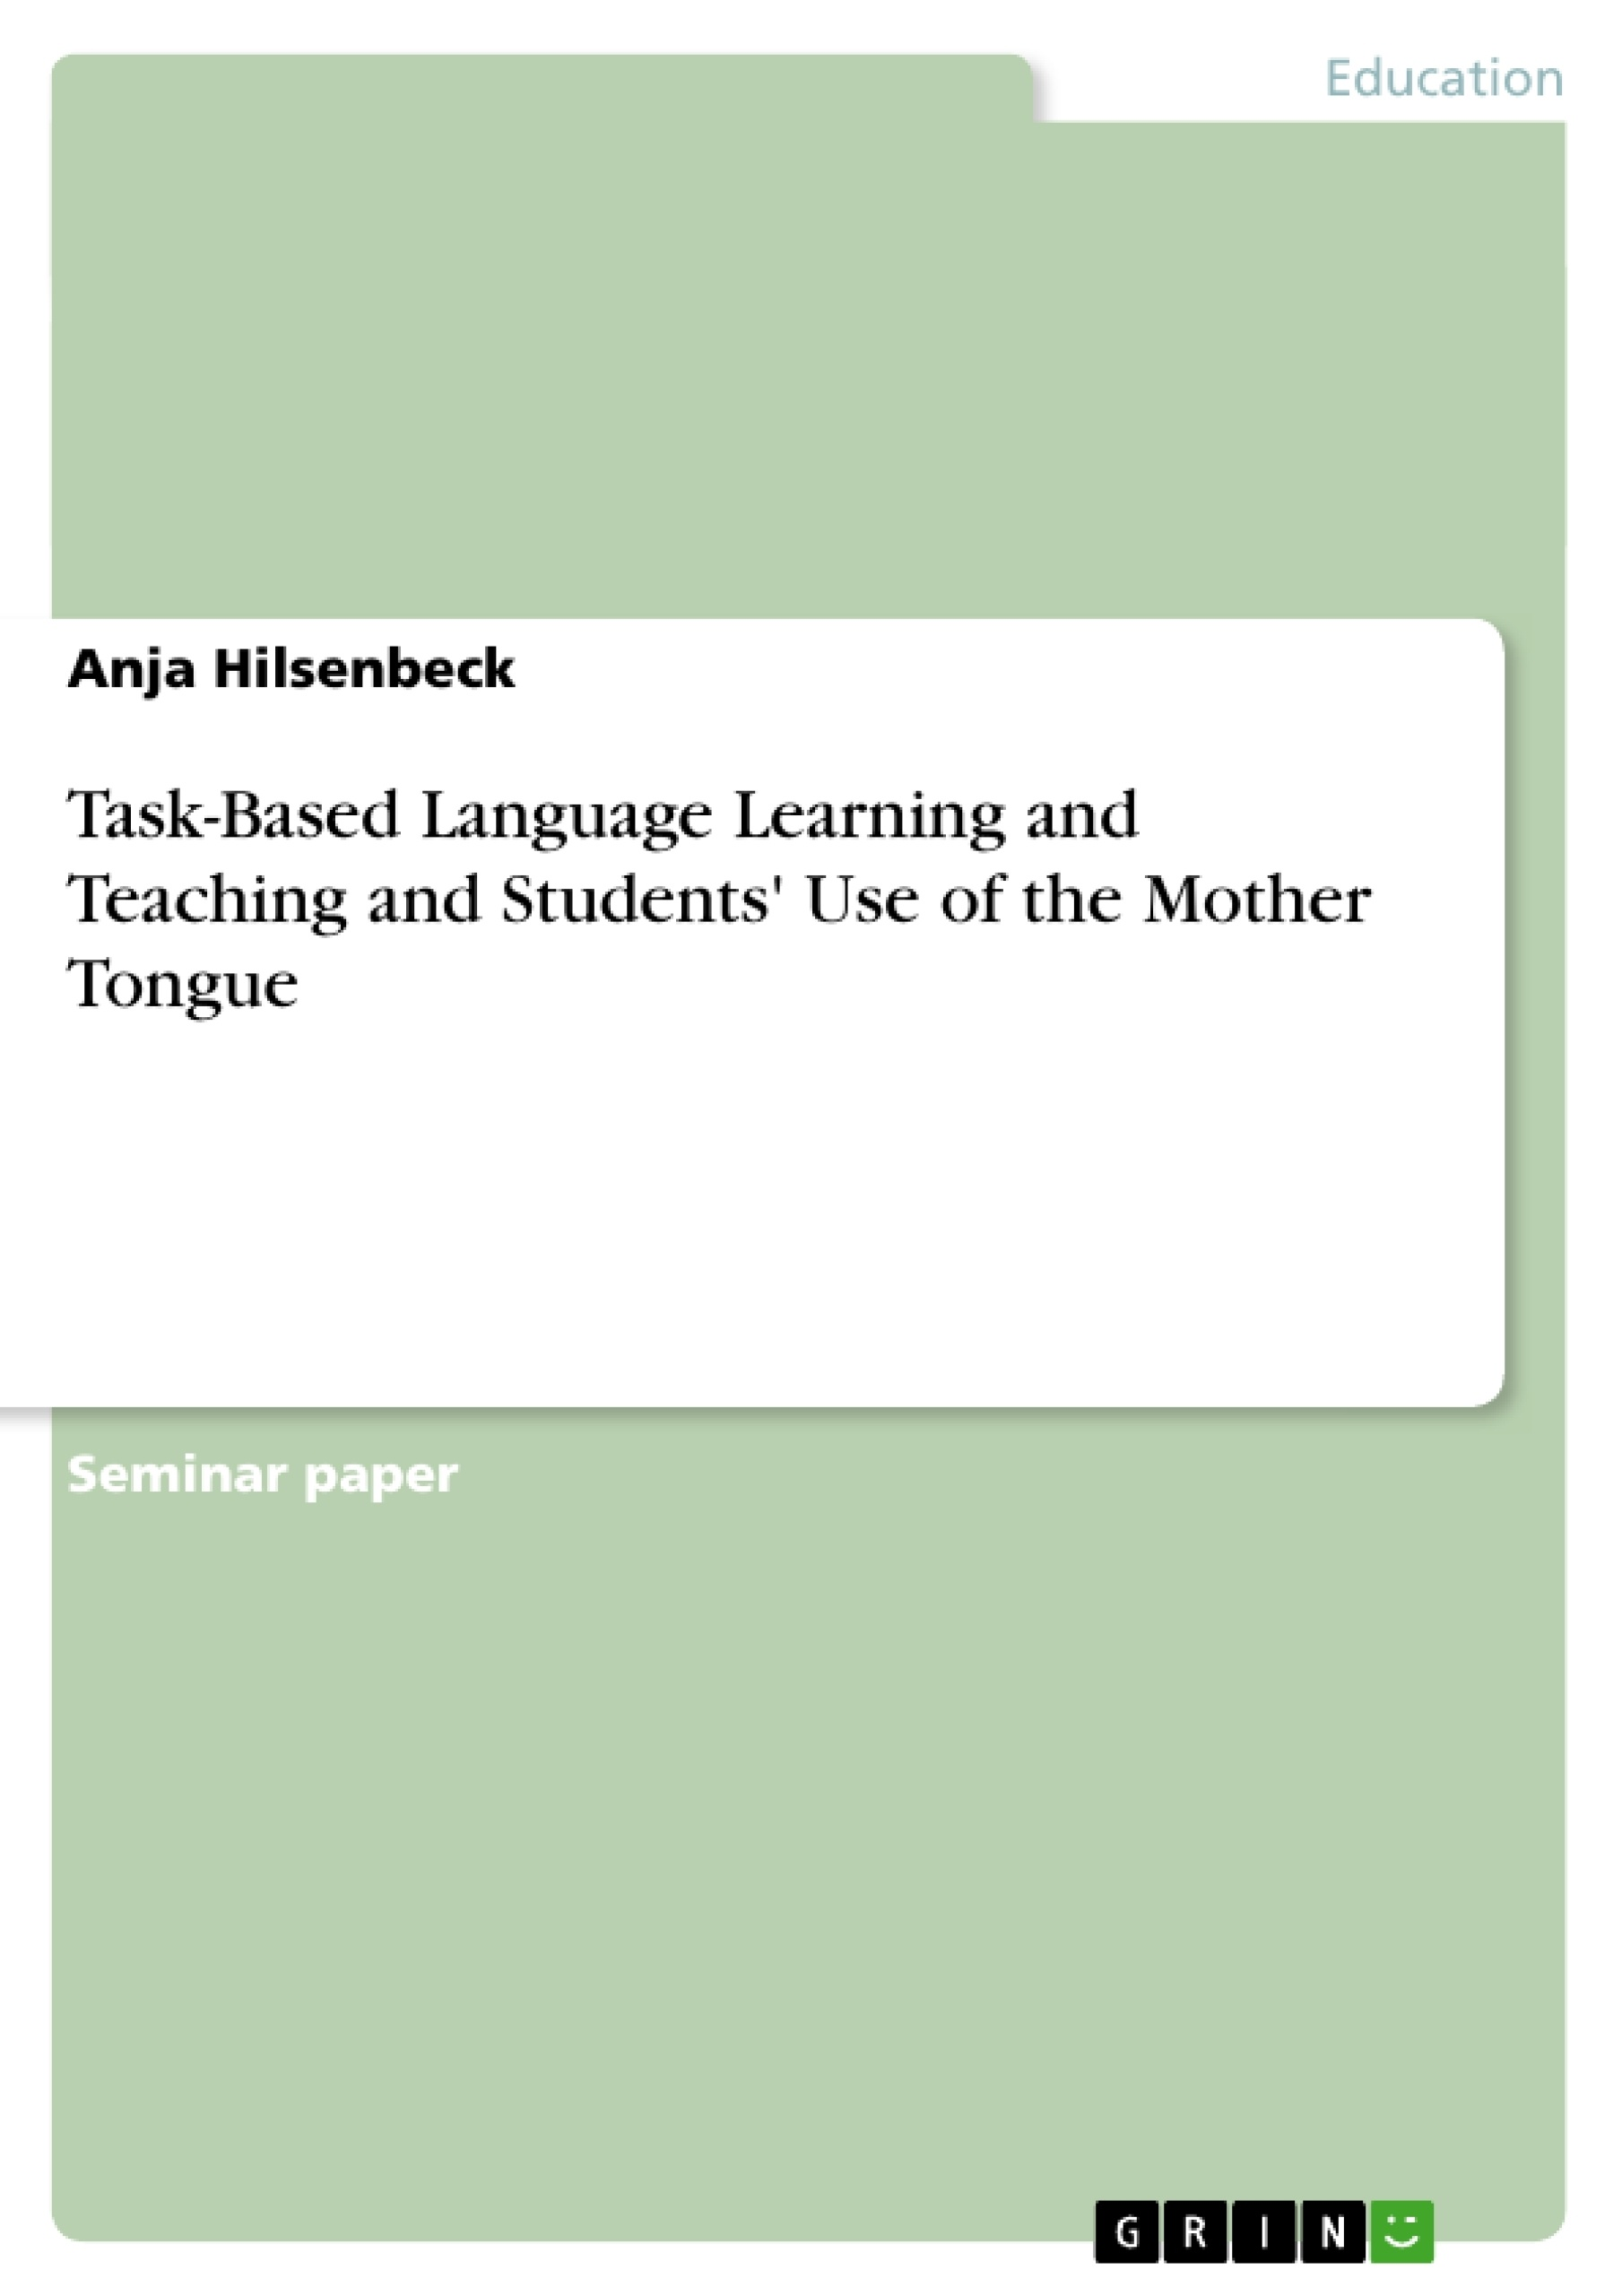 task based language learning and teaching and students use of the task based language learning and teaching and students use of the publish your master s thesis bachelor s thesis essay or term paper